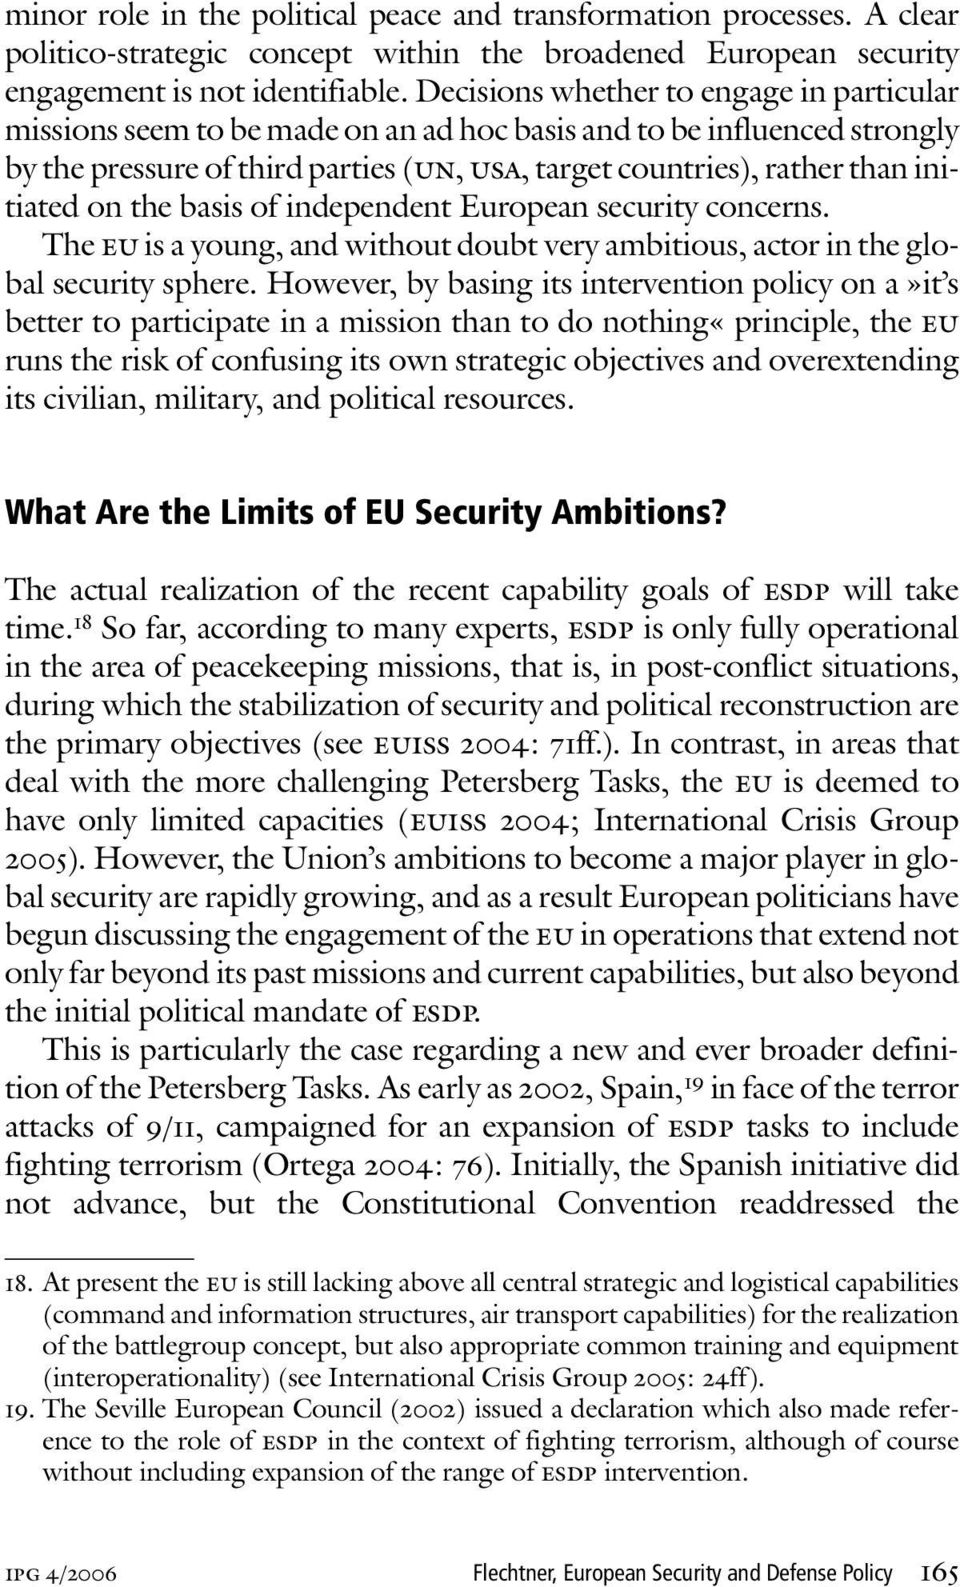 on the basis of independent European security concerns. The eu is a young, and without doubt very ambitious, actor in the global security sphere.